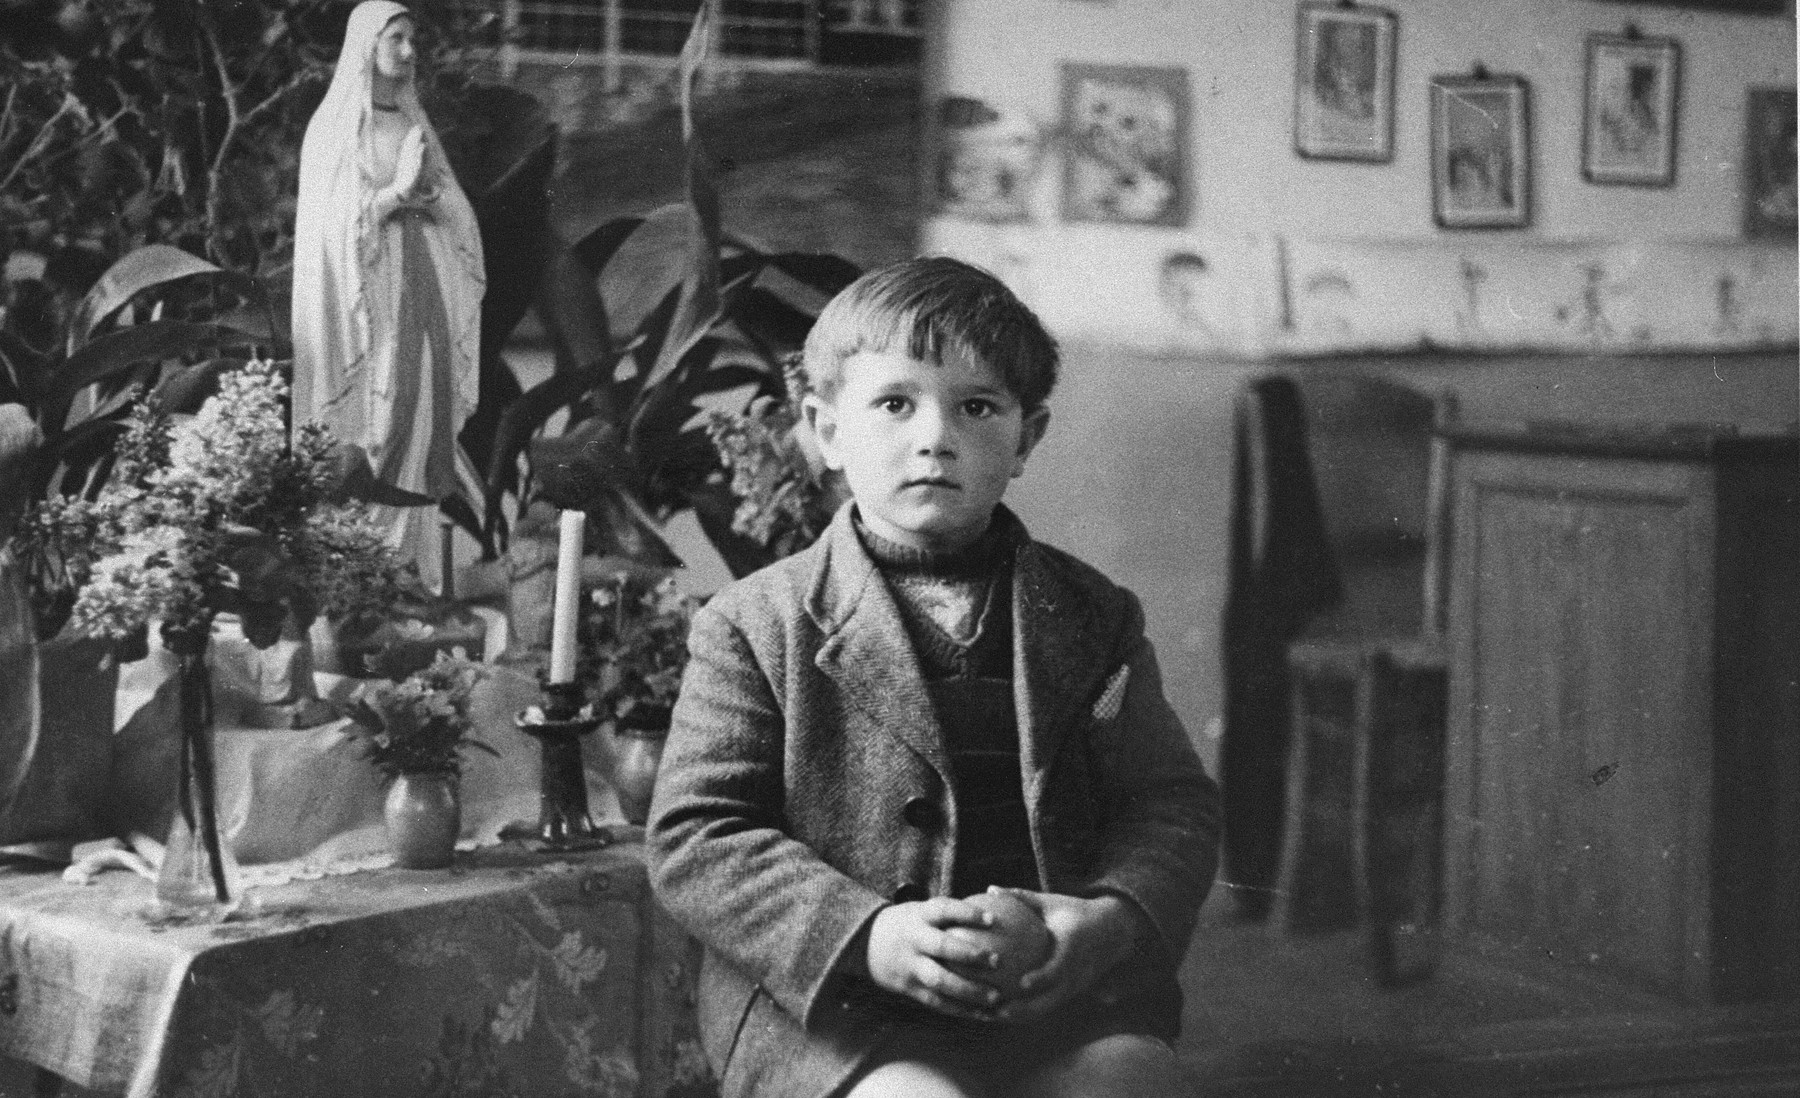 Portrait of Felix Zylbersztajn, a Jewish boy in hiding at a Belgian convent in the village of Oulter.